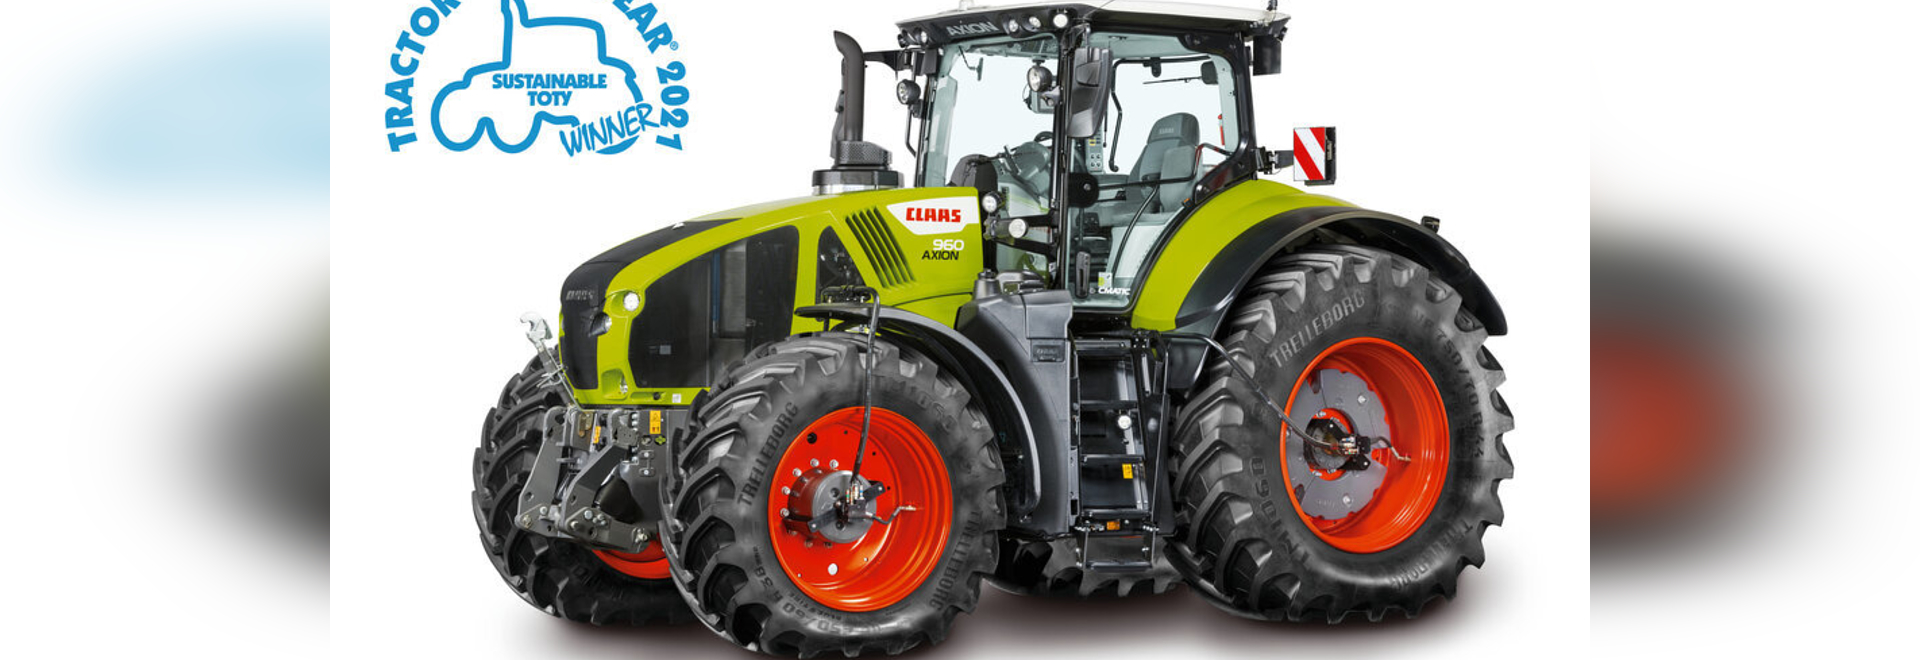 Different 'Claas': Axion 960 CEMOS wins 'Sustainable Tractor of the Year'